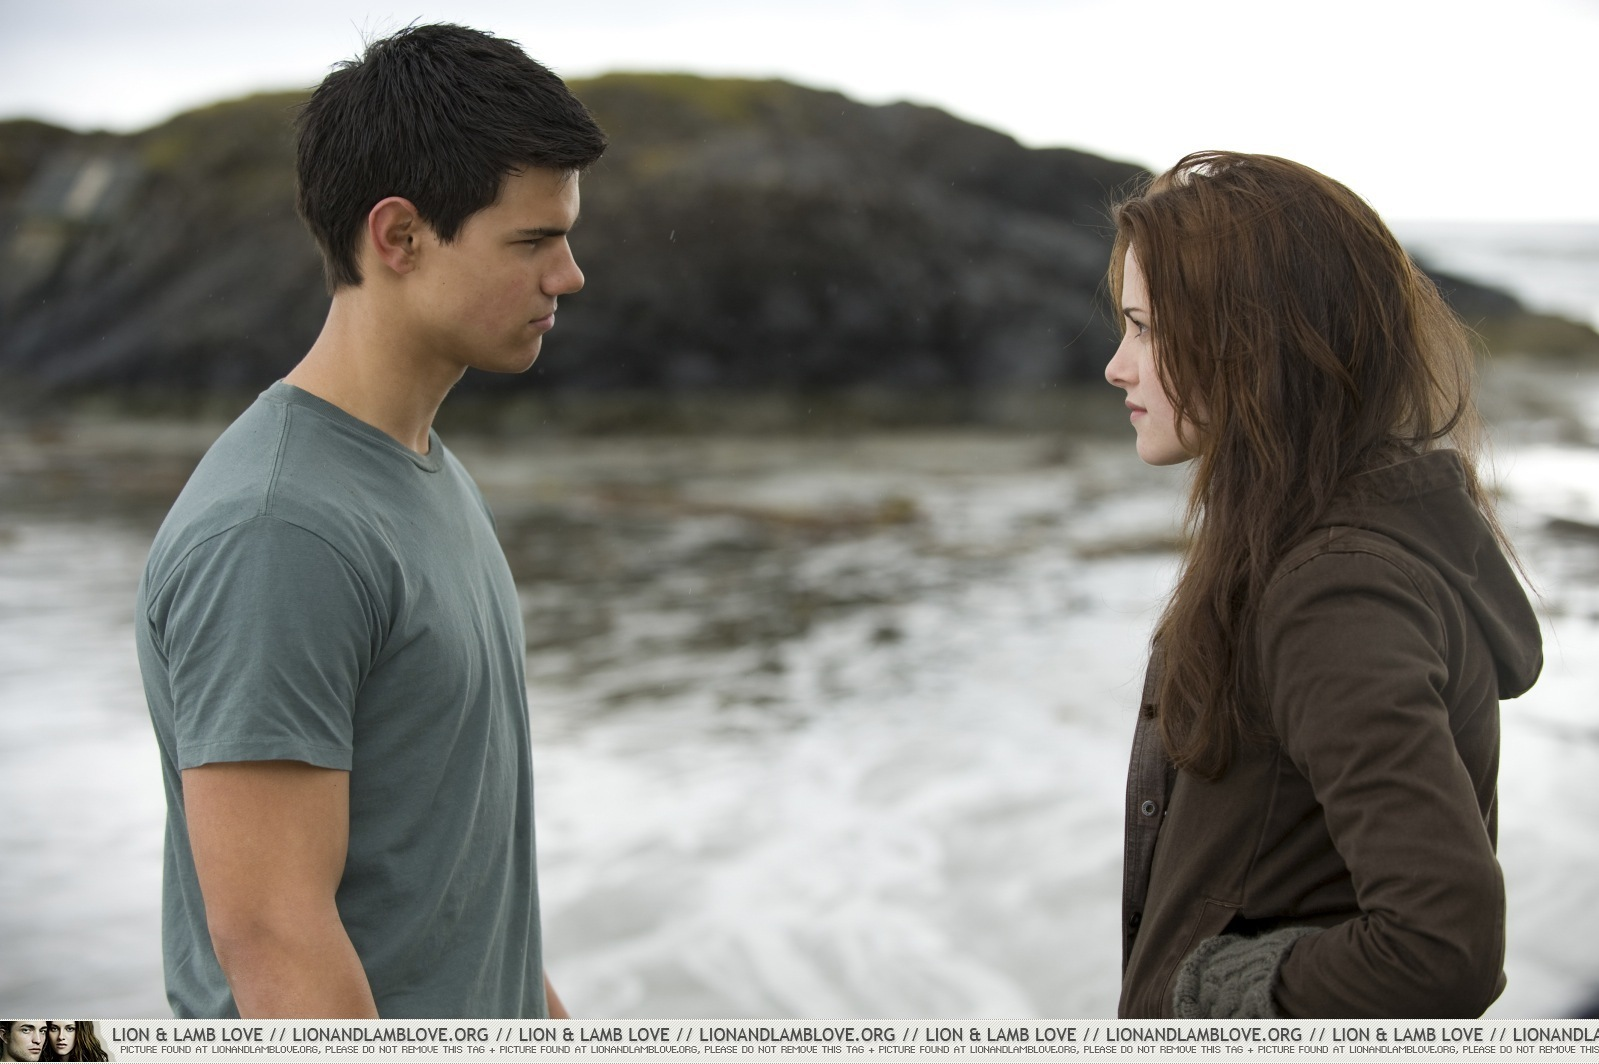 http://images2.fanpop.com/images/photos/7900000/New-Moon-still-HQ-and-Super-large-twilight-series-7923669-1599-1064.jpg